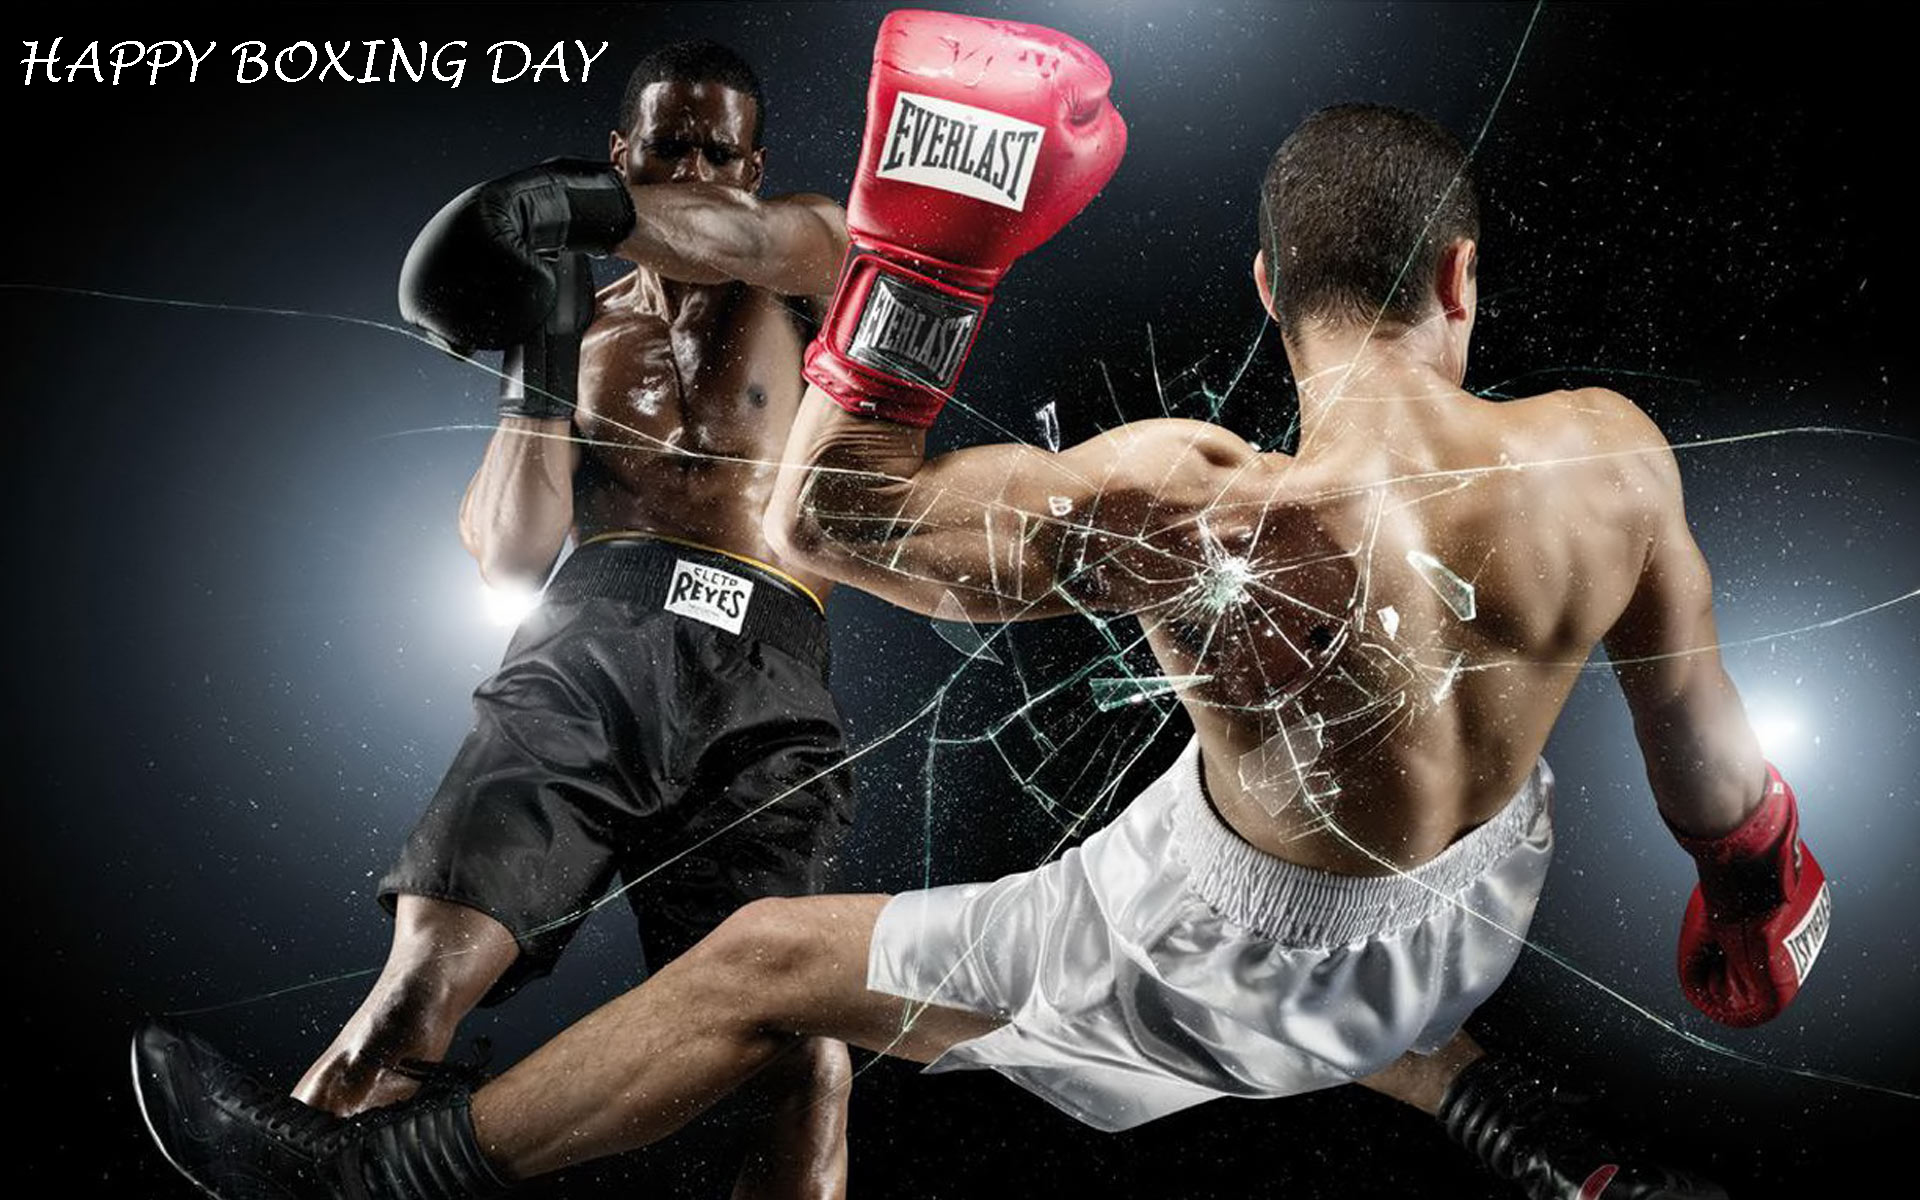 18 Very Best Boxing Day Images